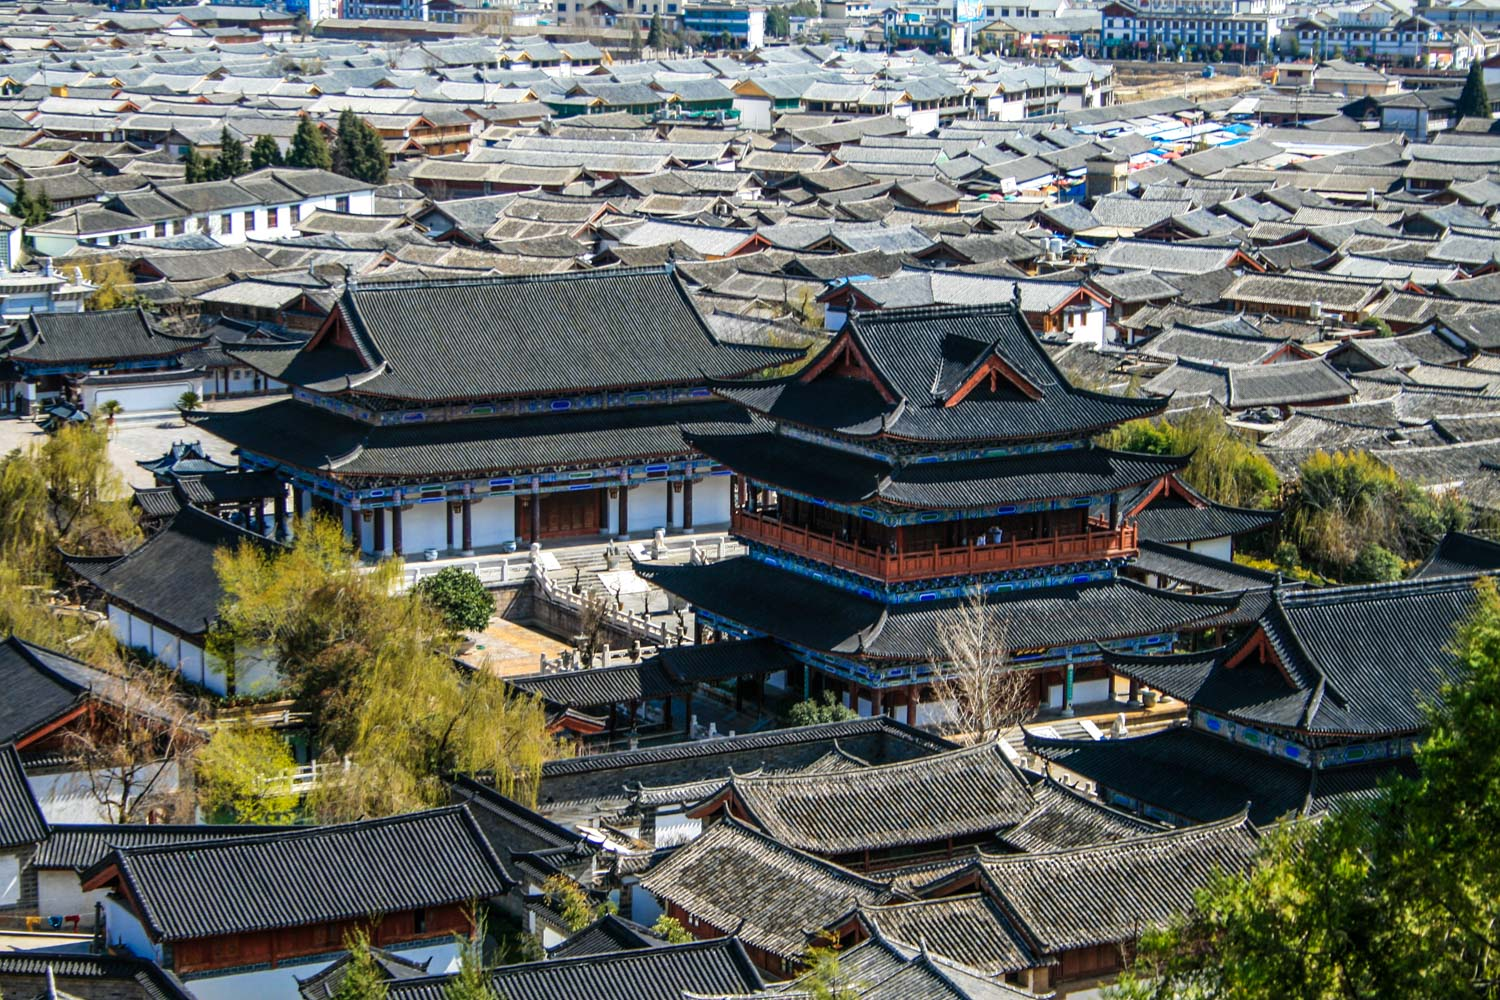 Mu Palace, The palace where the Mu Clan of the Naxi people ruled for over 400 years